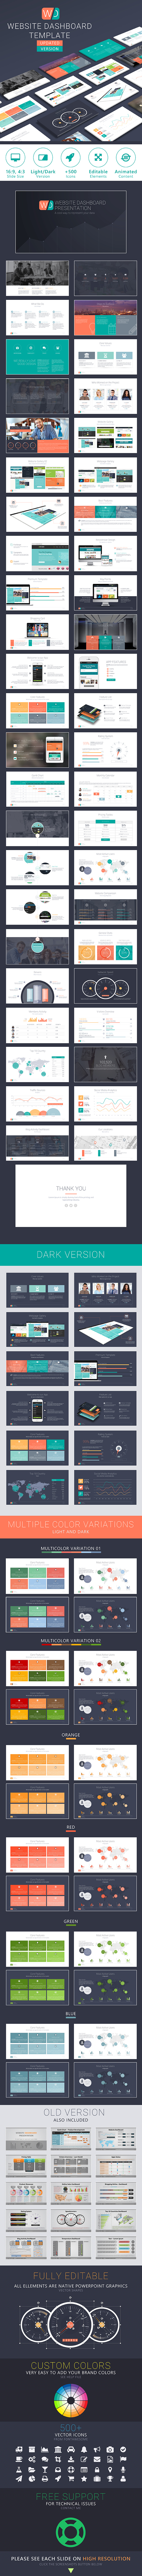 Website Dashboard Presentation Template By Adriandragne Graphicriver